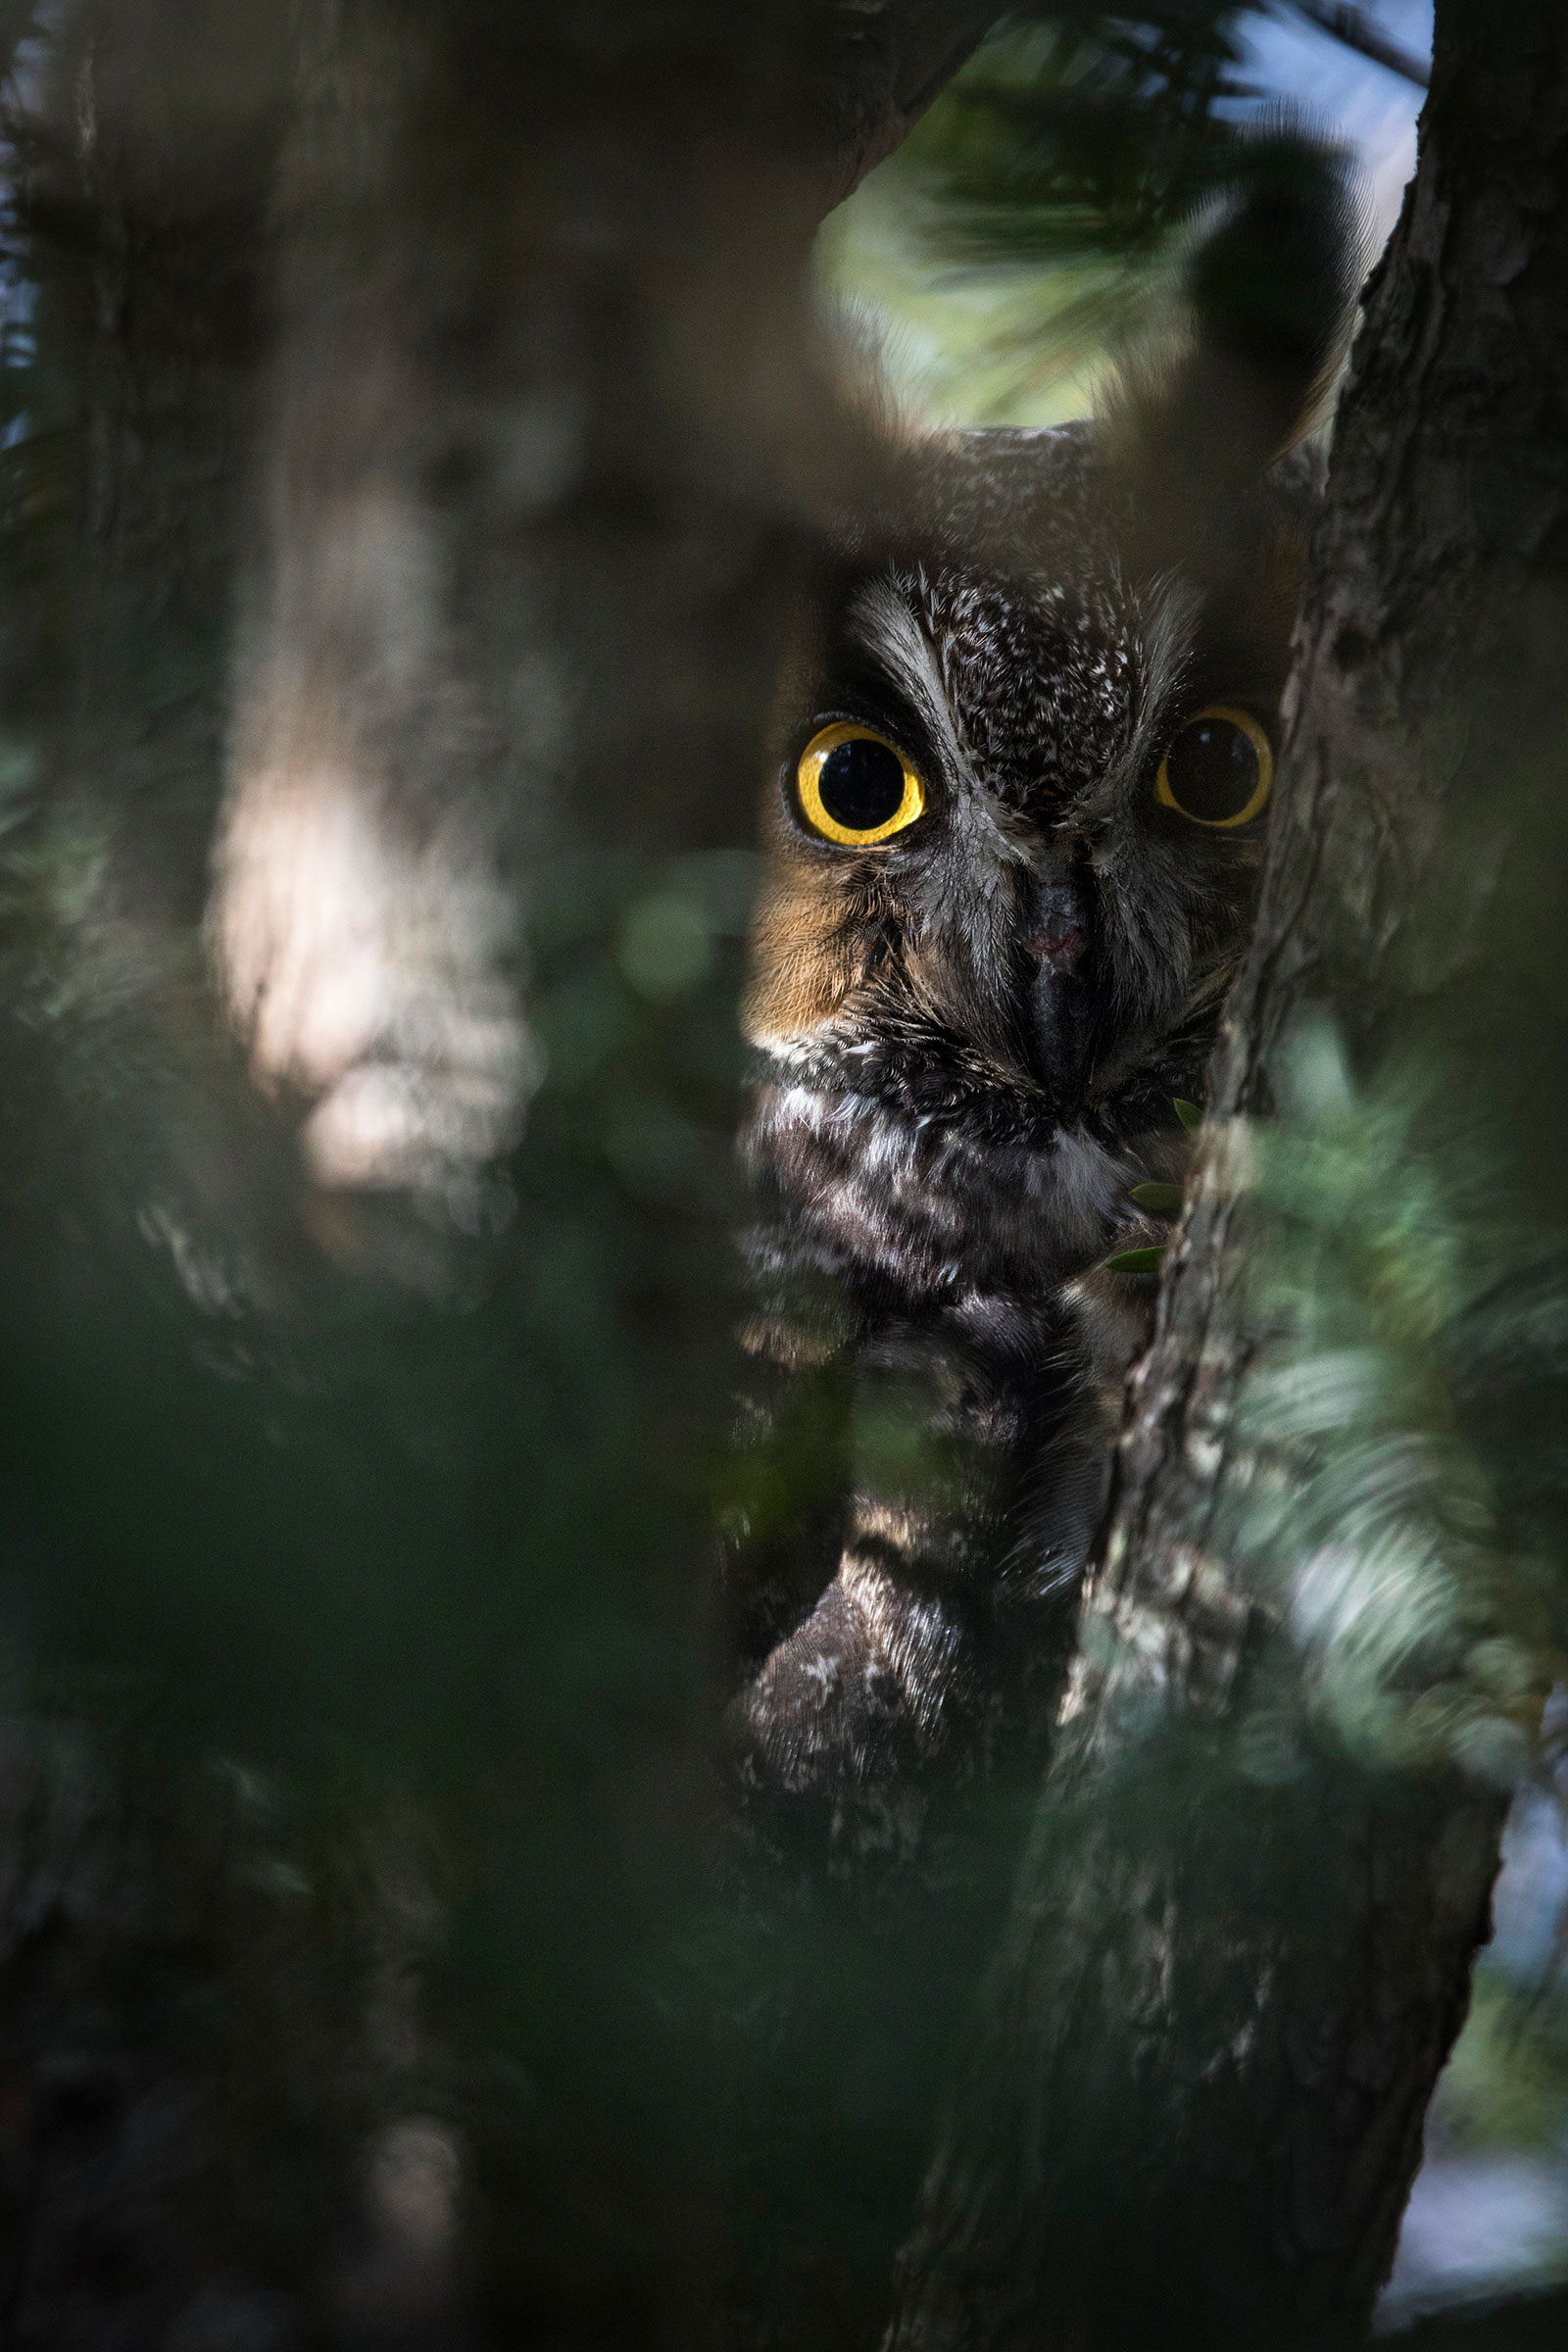 If you're lucky, you might see or hear a Long-eared Owl in Central Park. Francois Portmann